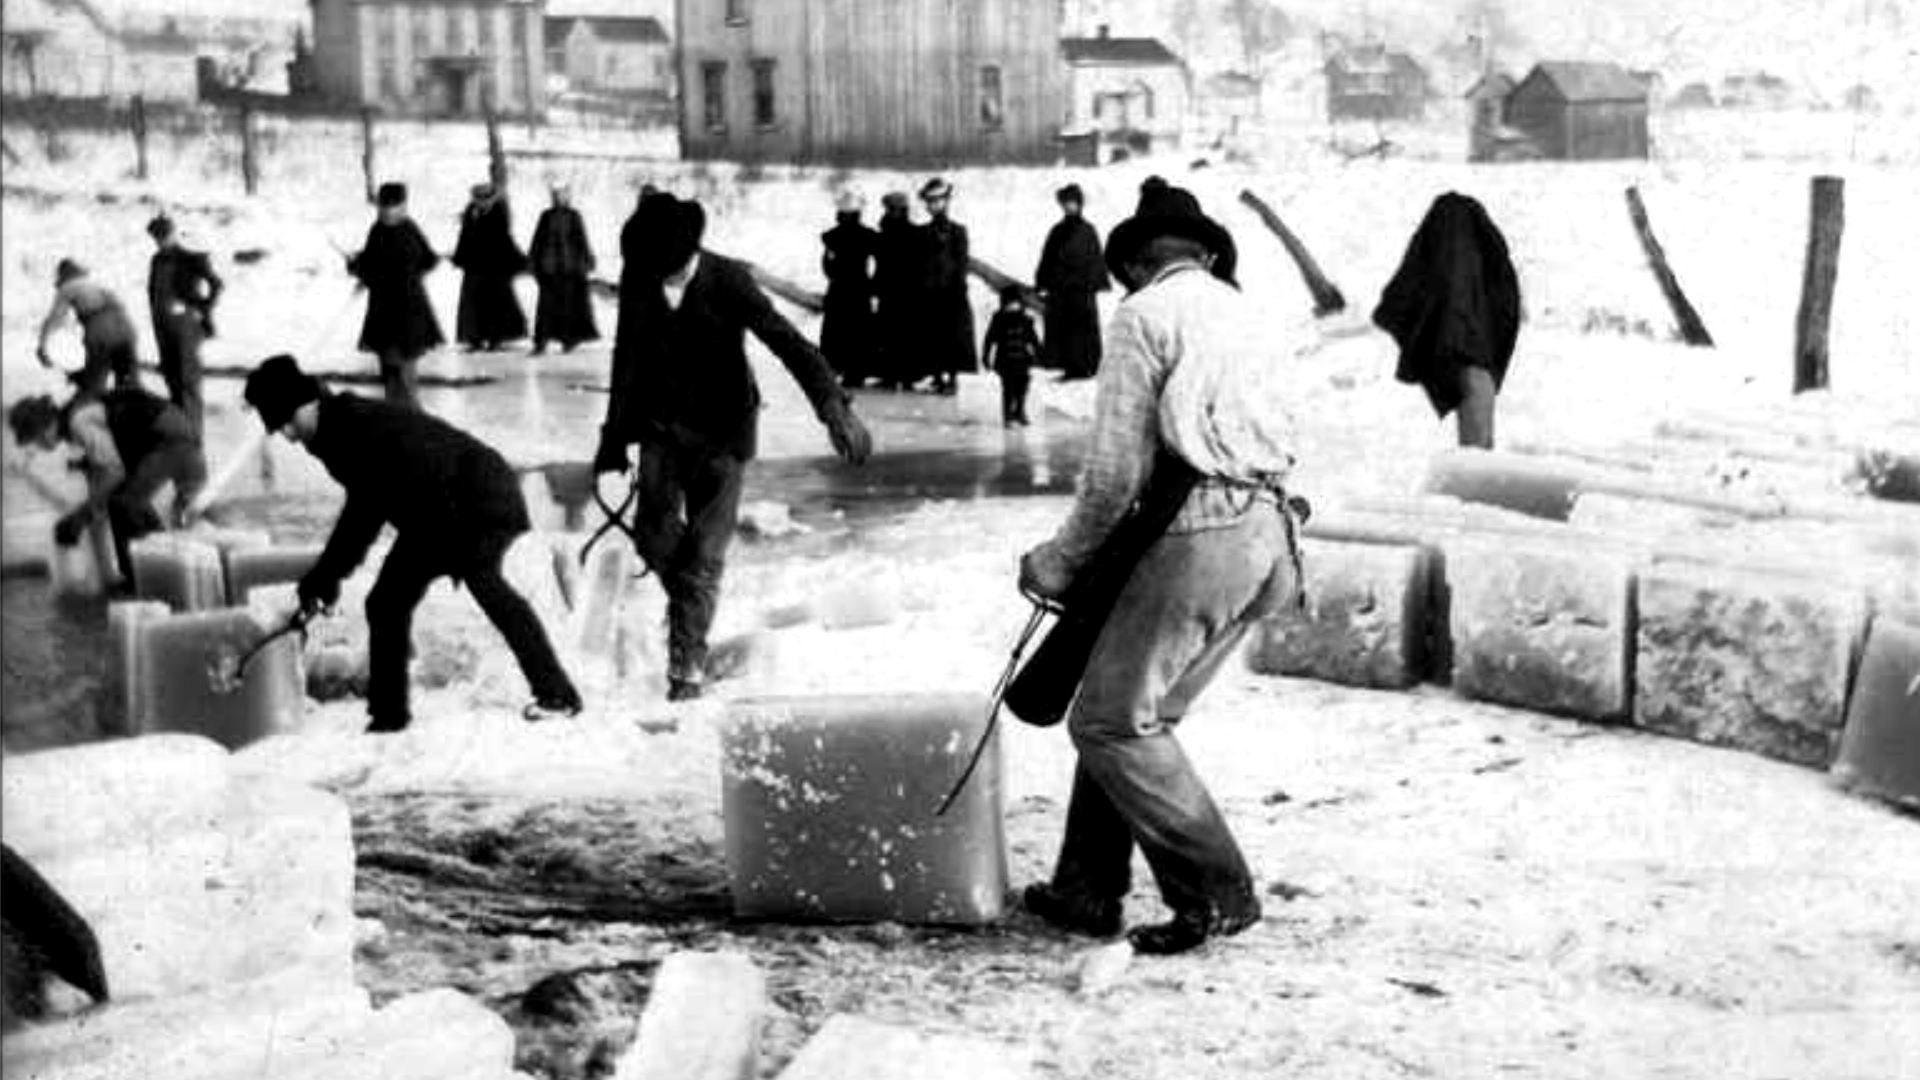 Take a look back at commercial ice harvesting, cutting large blocks of ice from fresh water ponds, once the ninth biggest industry in New England.